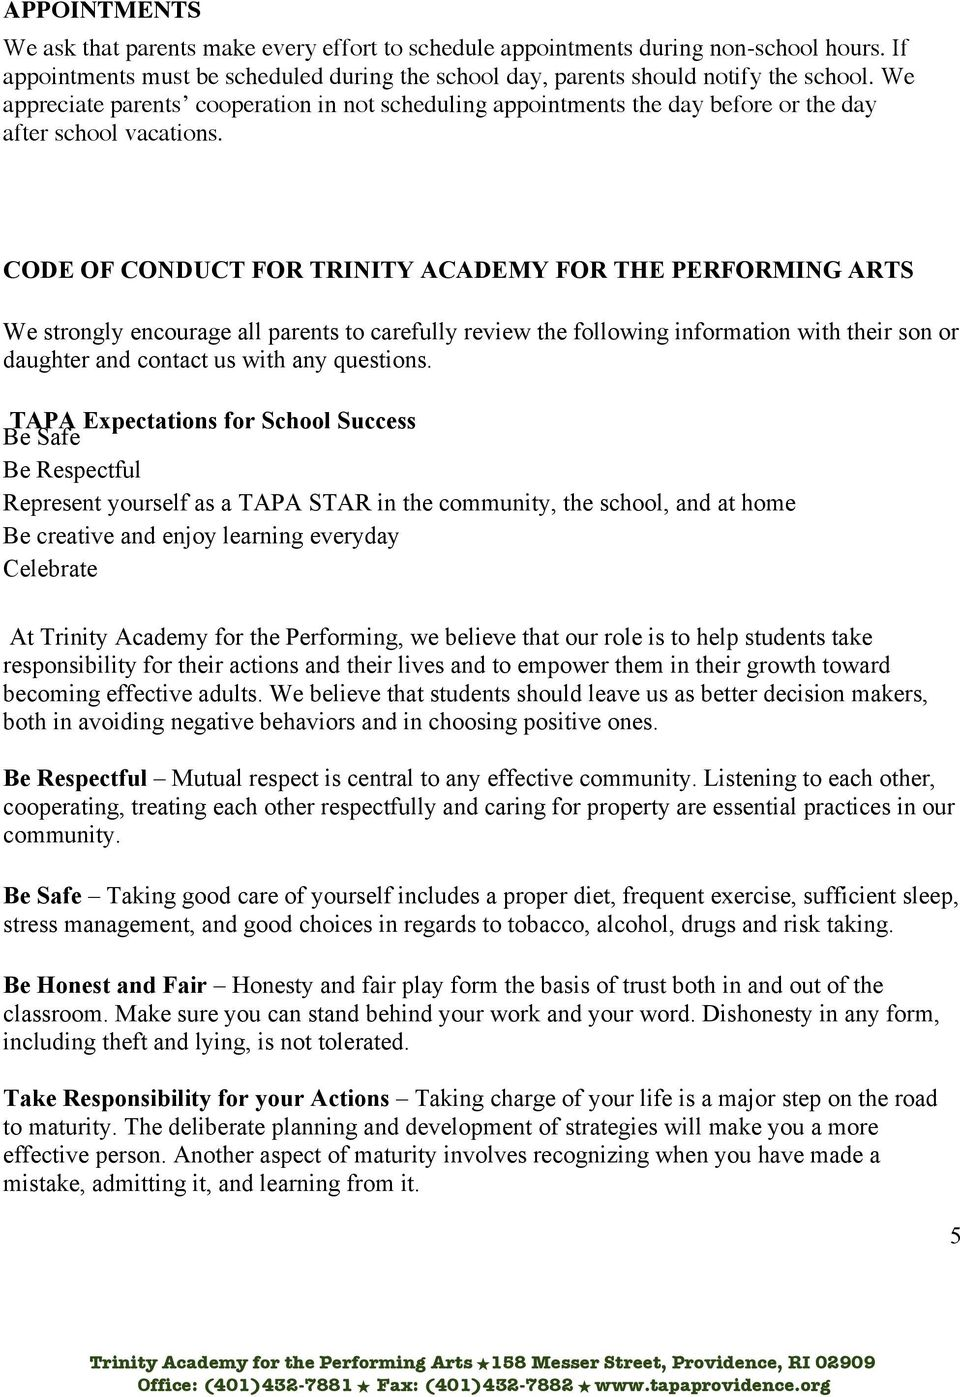 CODE OF CONDUCT FOR TRINITY ACADEMY FOR THE PERFORMING ARTS We strongly encourage all parents to carefully review the following information with their son or daughter and contact us with any